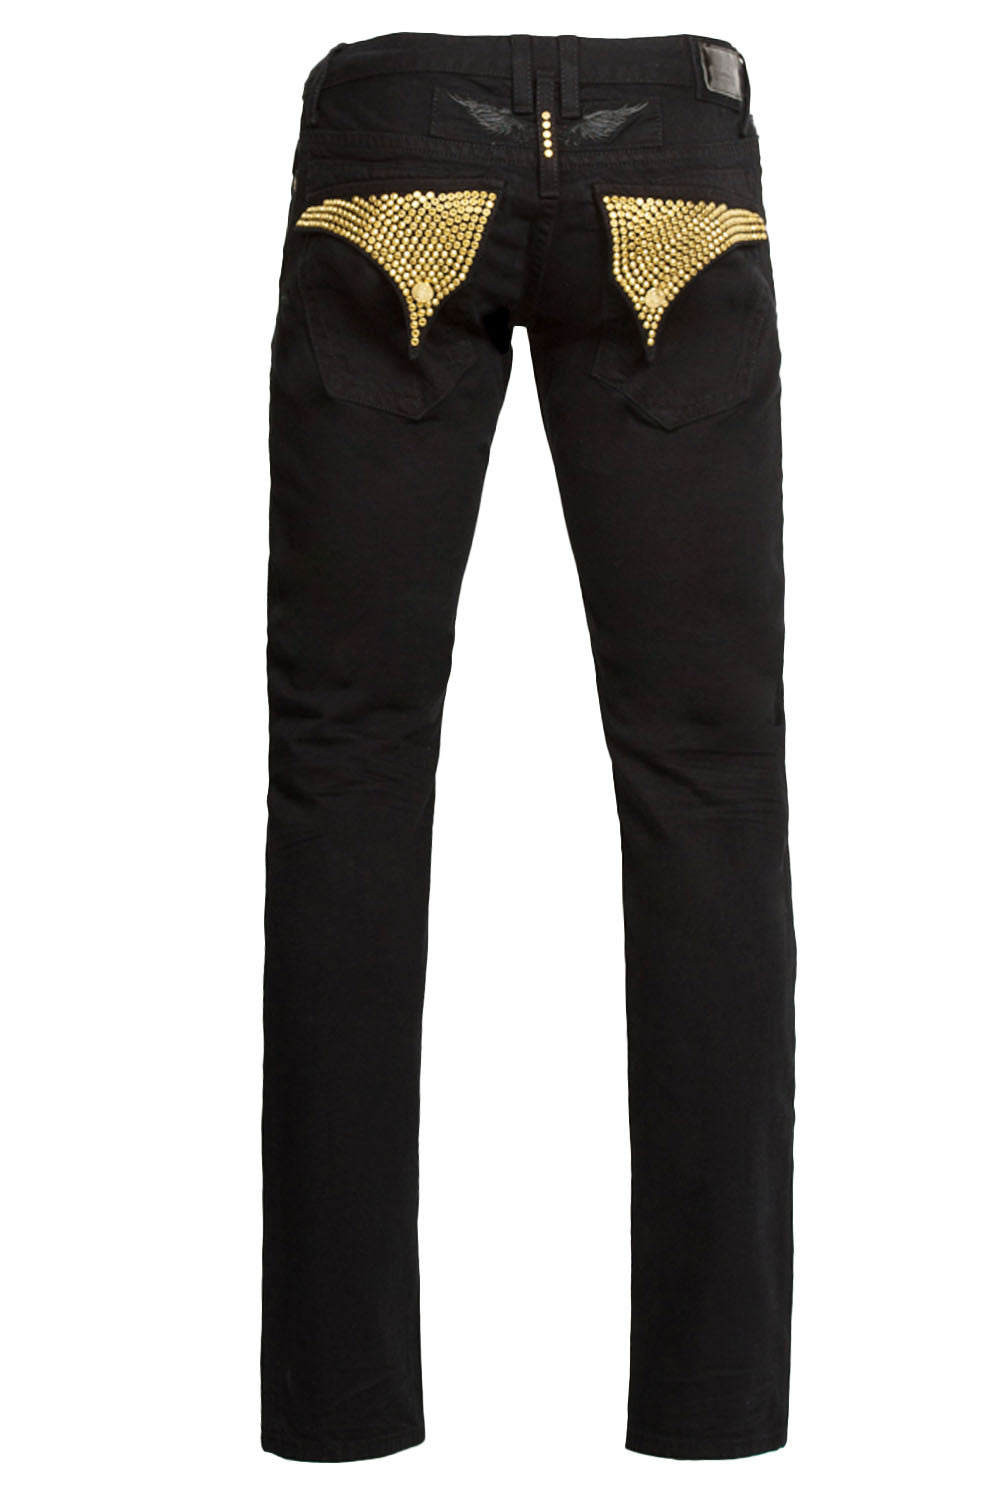 Aurum Swarovski Black Denim